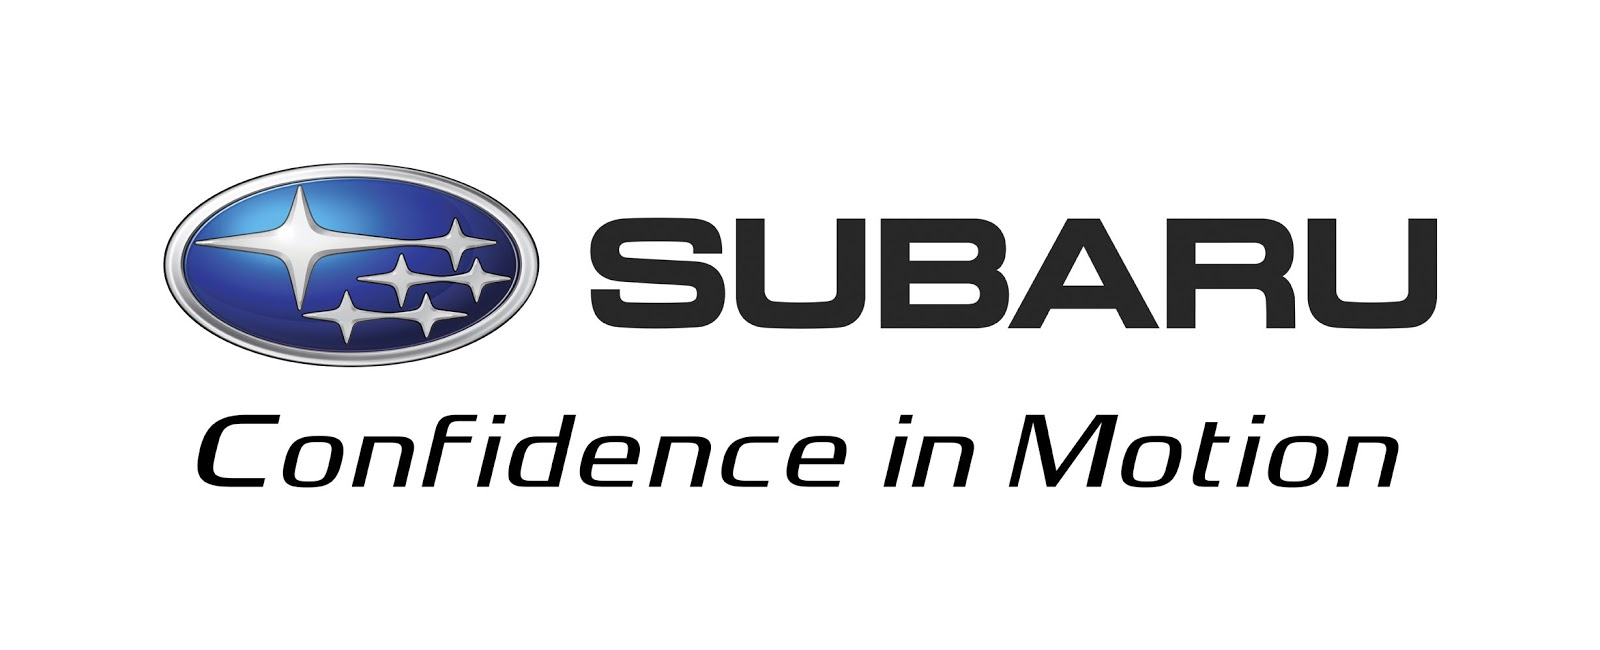 Subaru Ownership Experience Benefits